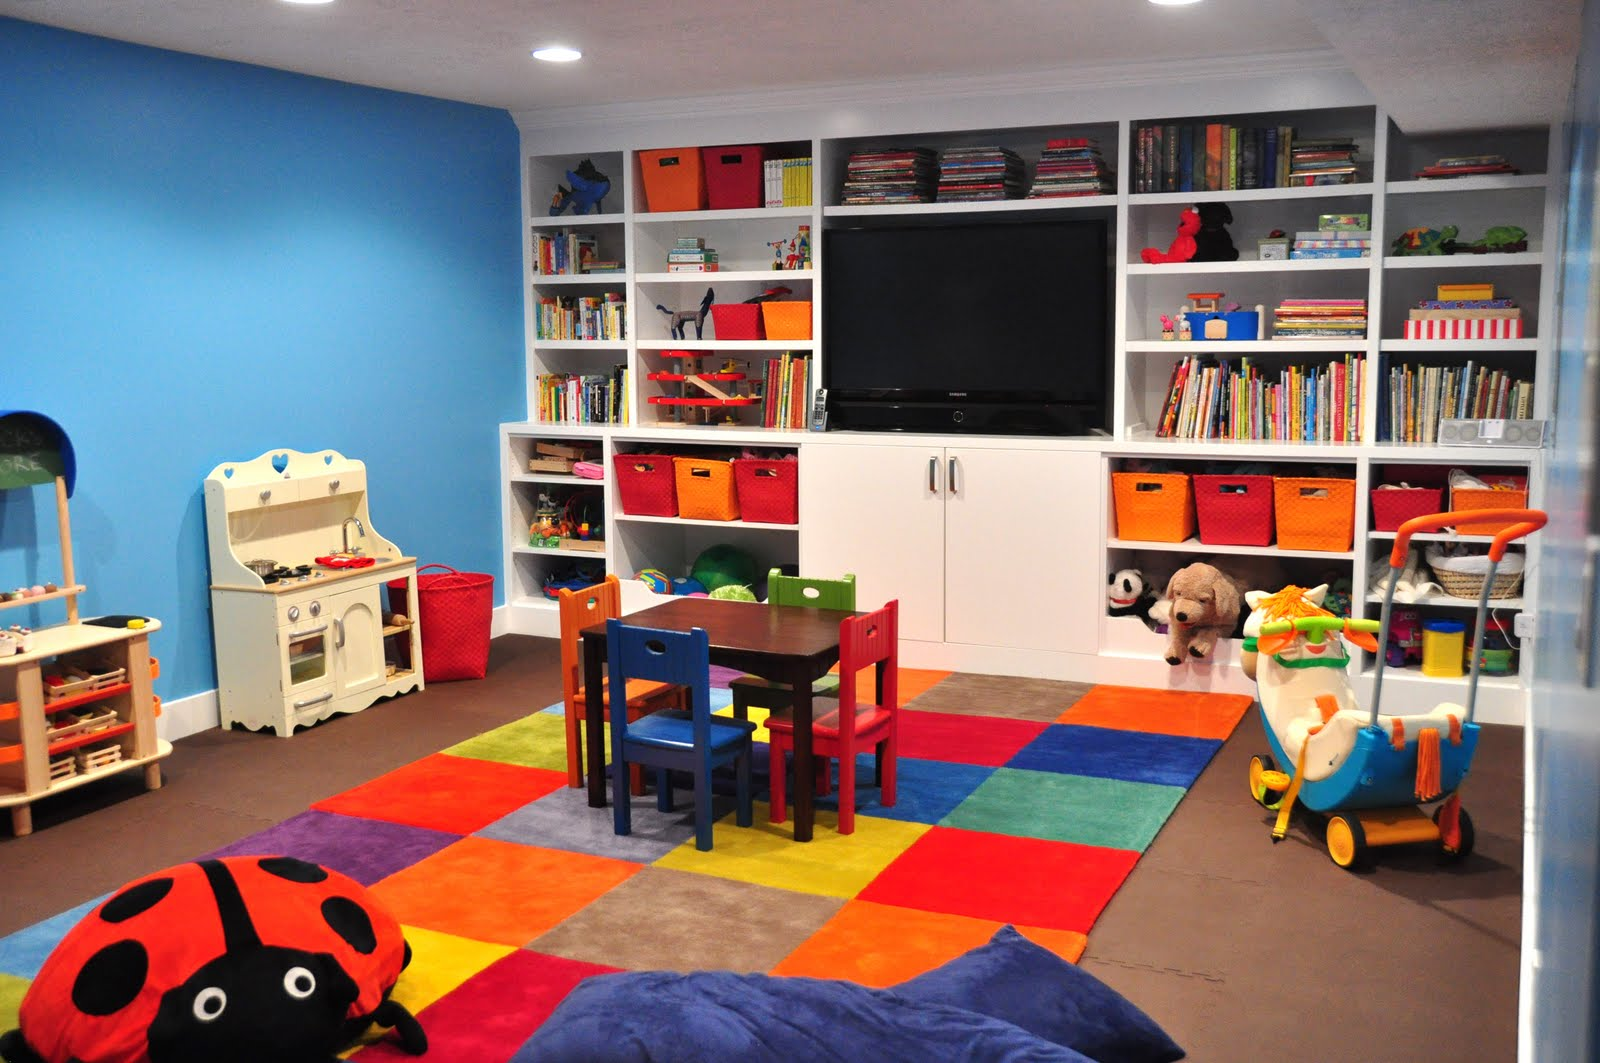 Charming Toy Room Design Ideas Part - 1: Interior Design Ideas